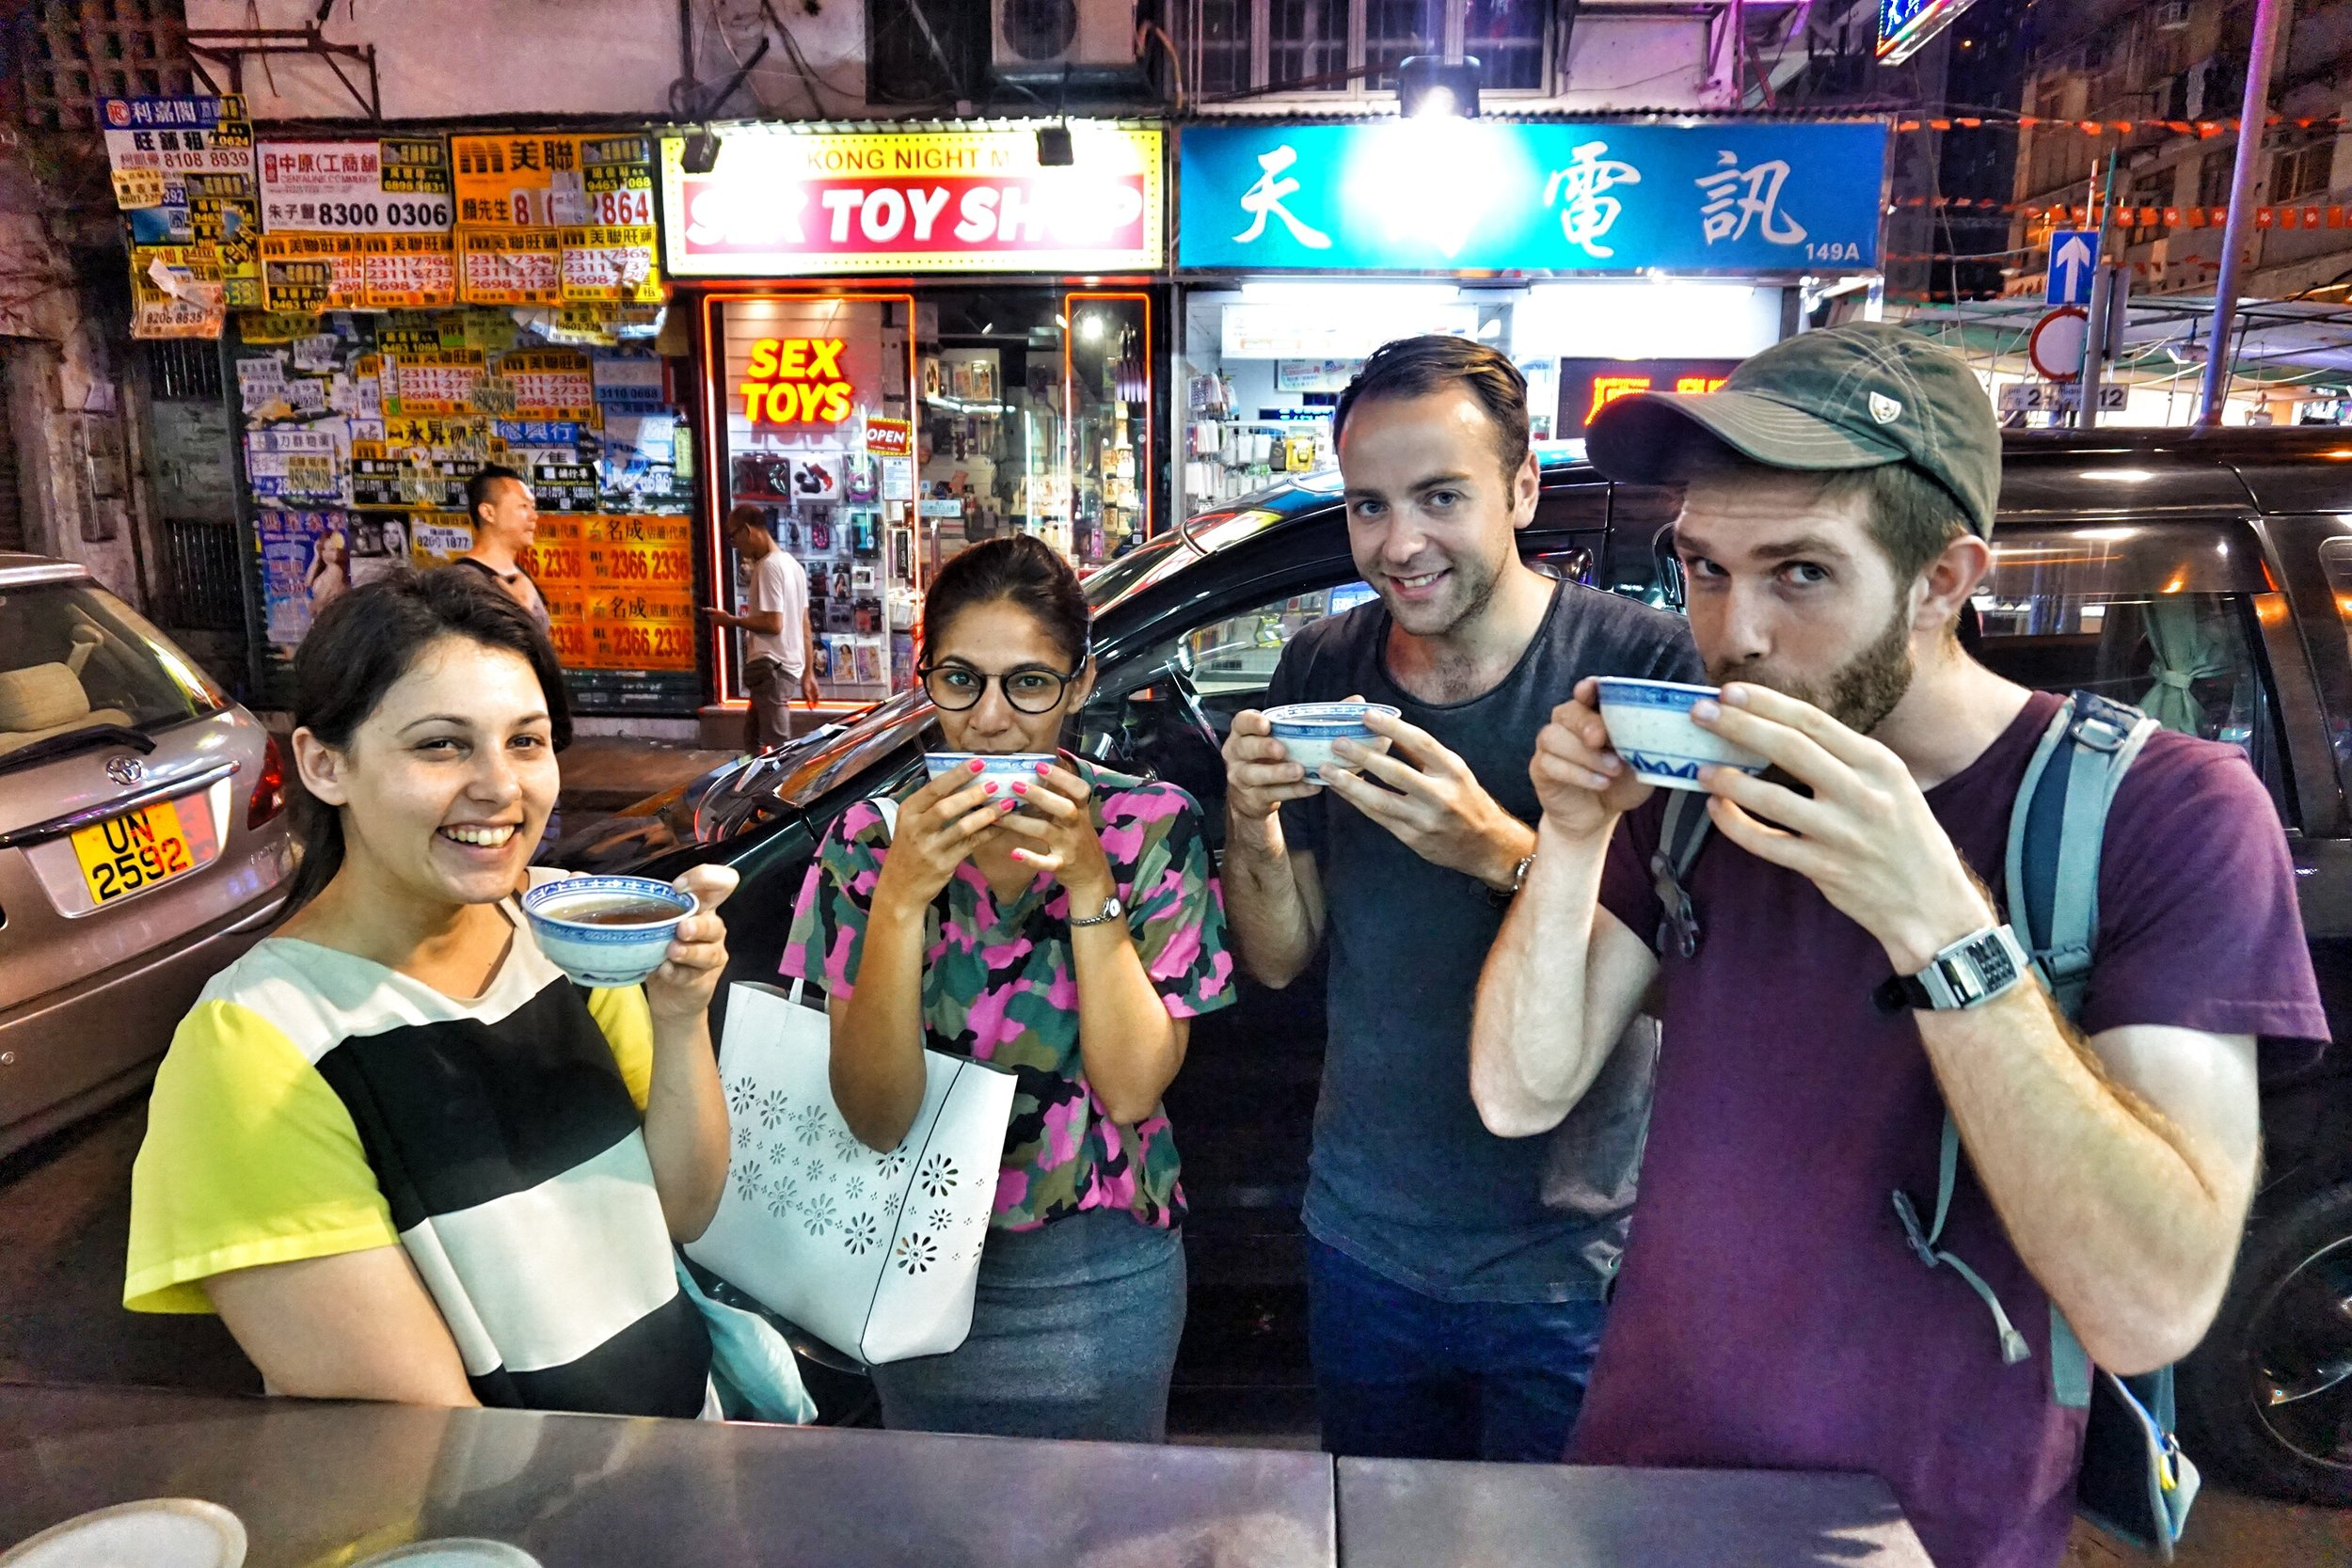 join your privater tour guide in Hong Kong for a health boosting cup of herbal tea at the end of your night tour.